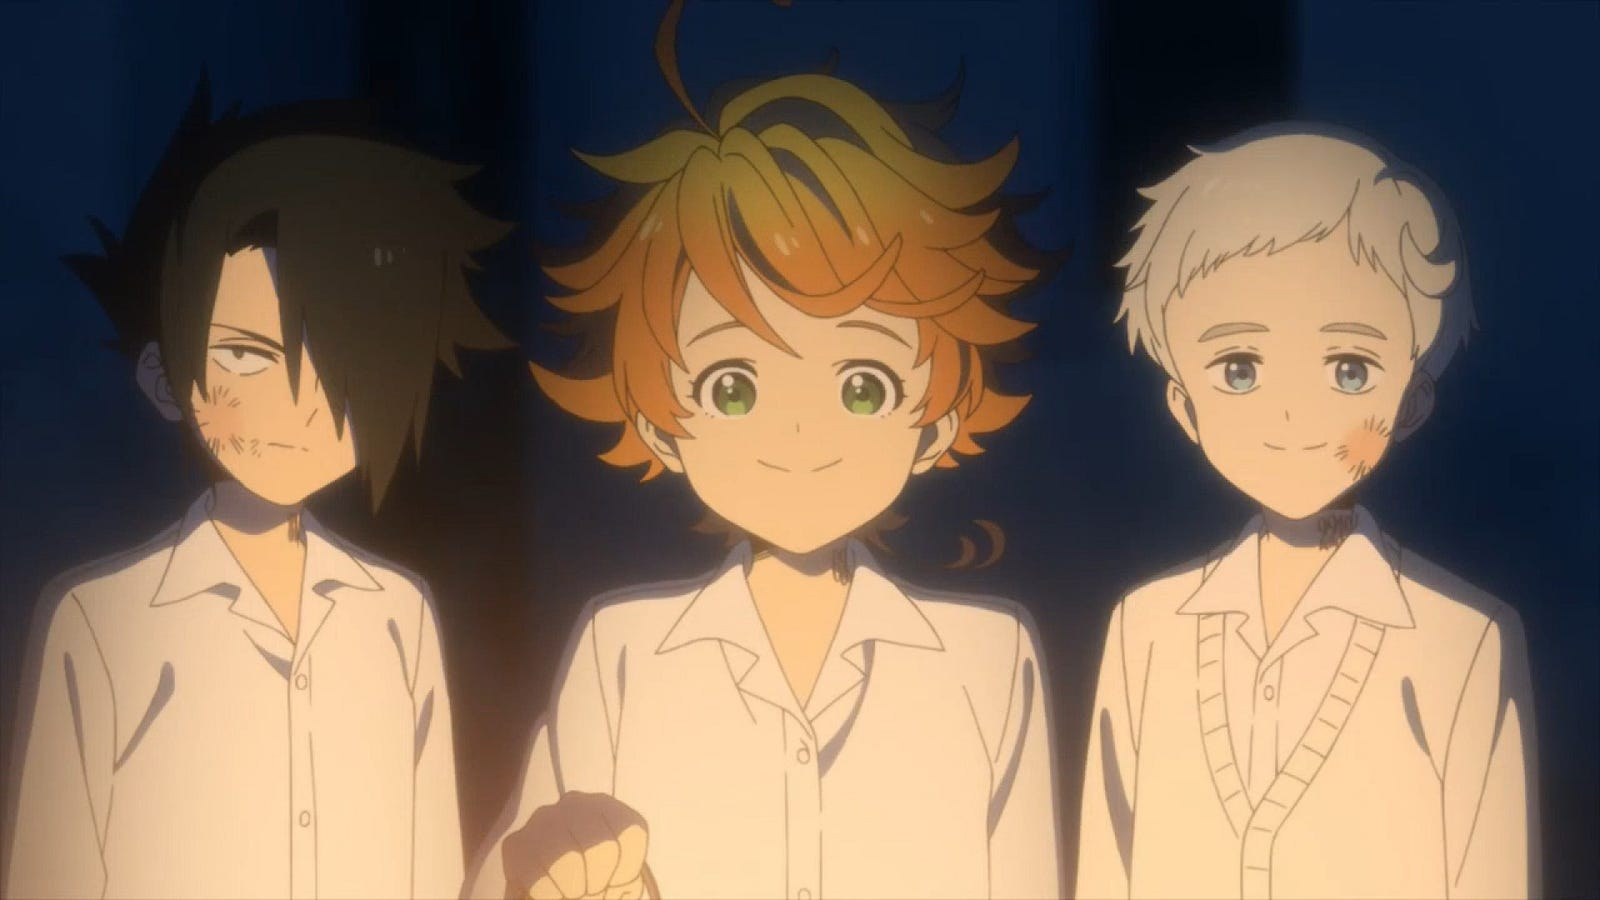 The Promised Neverland The Anitay Review